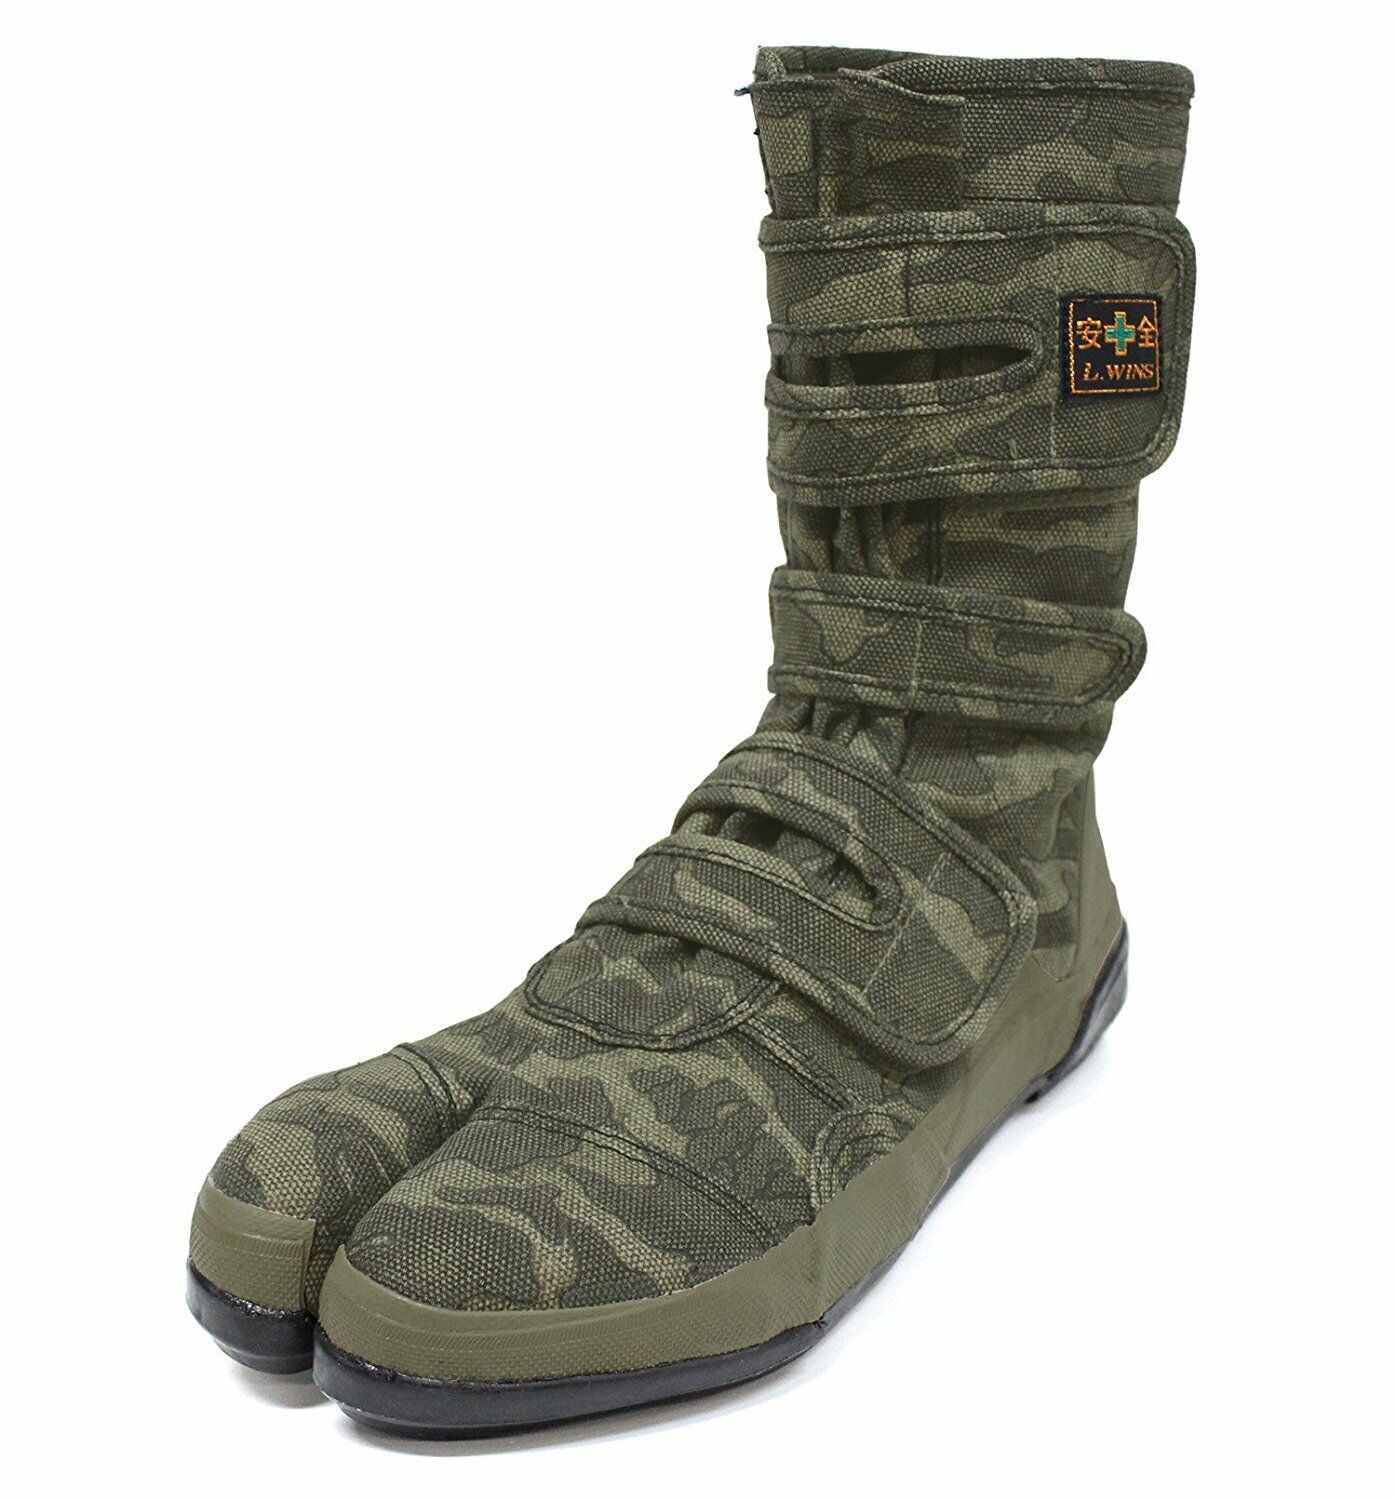 Japanese CAMO SPLIT TOE TABI SHOES GUARD SAFETY Boots VO-8021 Size US9(27cm)